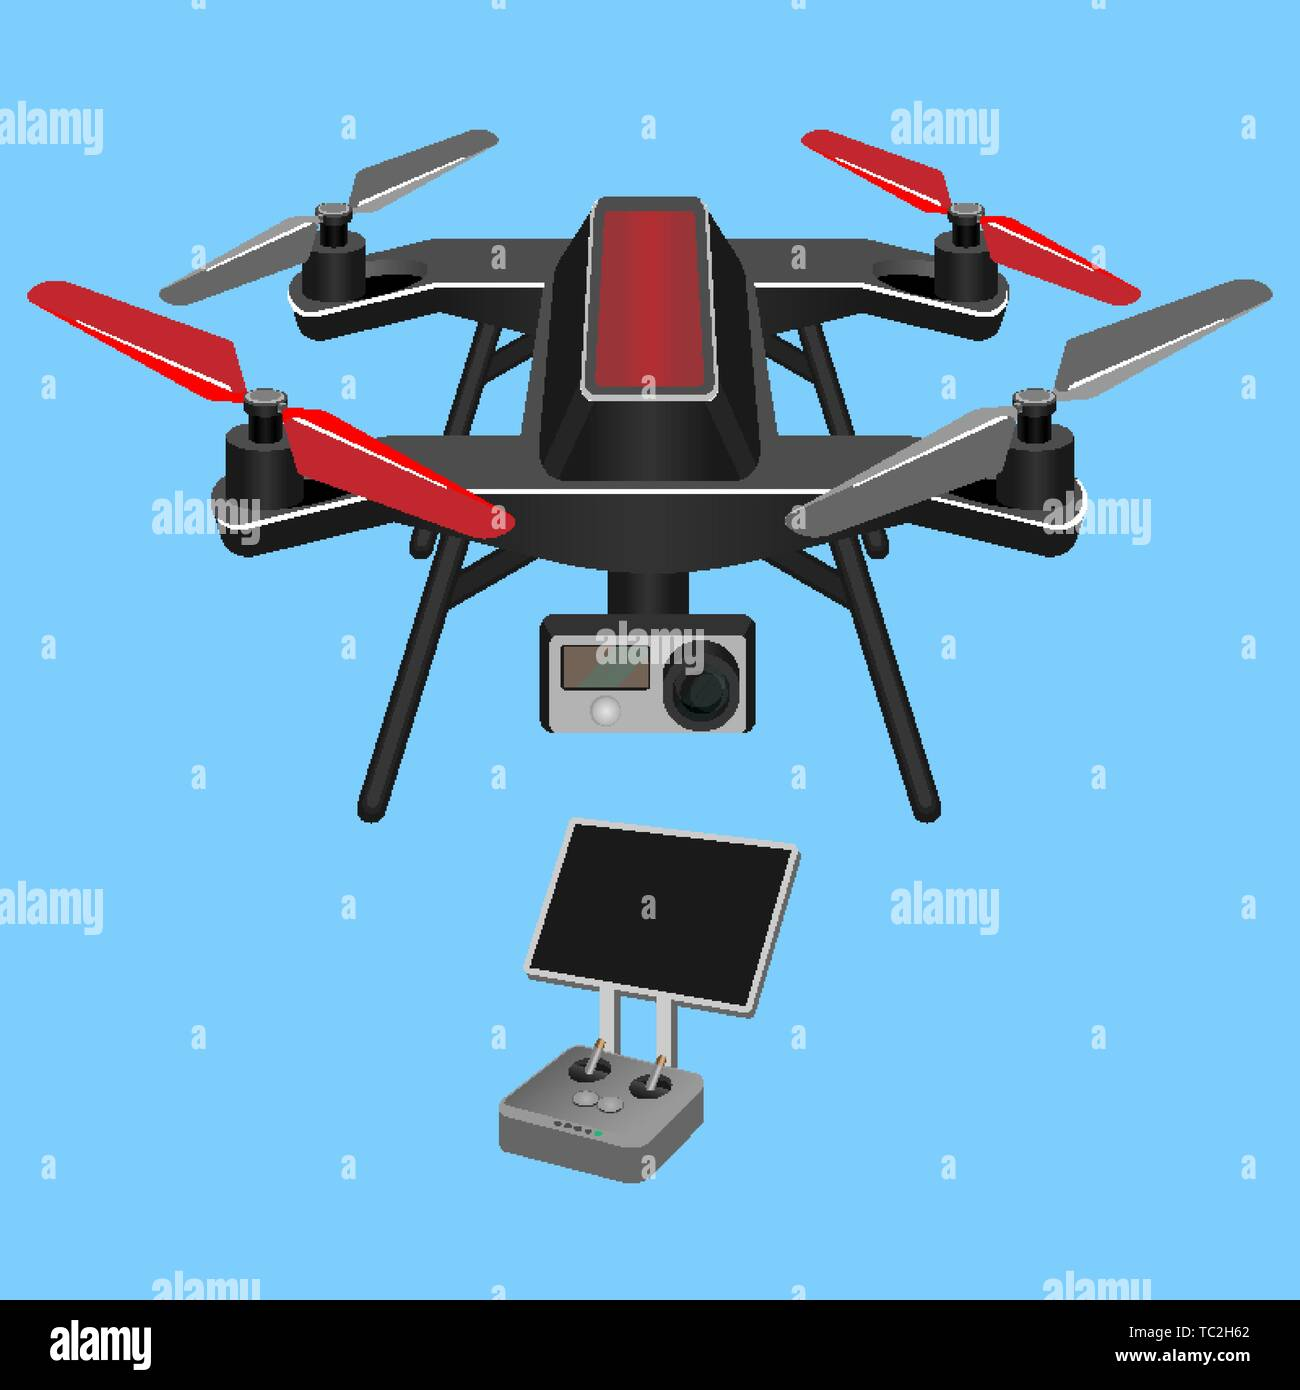 Vector illustration of multirotor dark-ruddy helicopter lifted and propelle - Stock Image